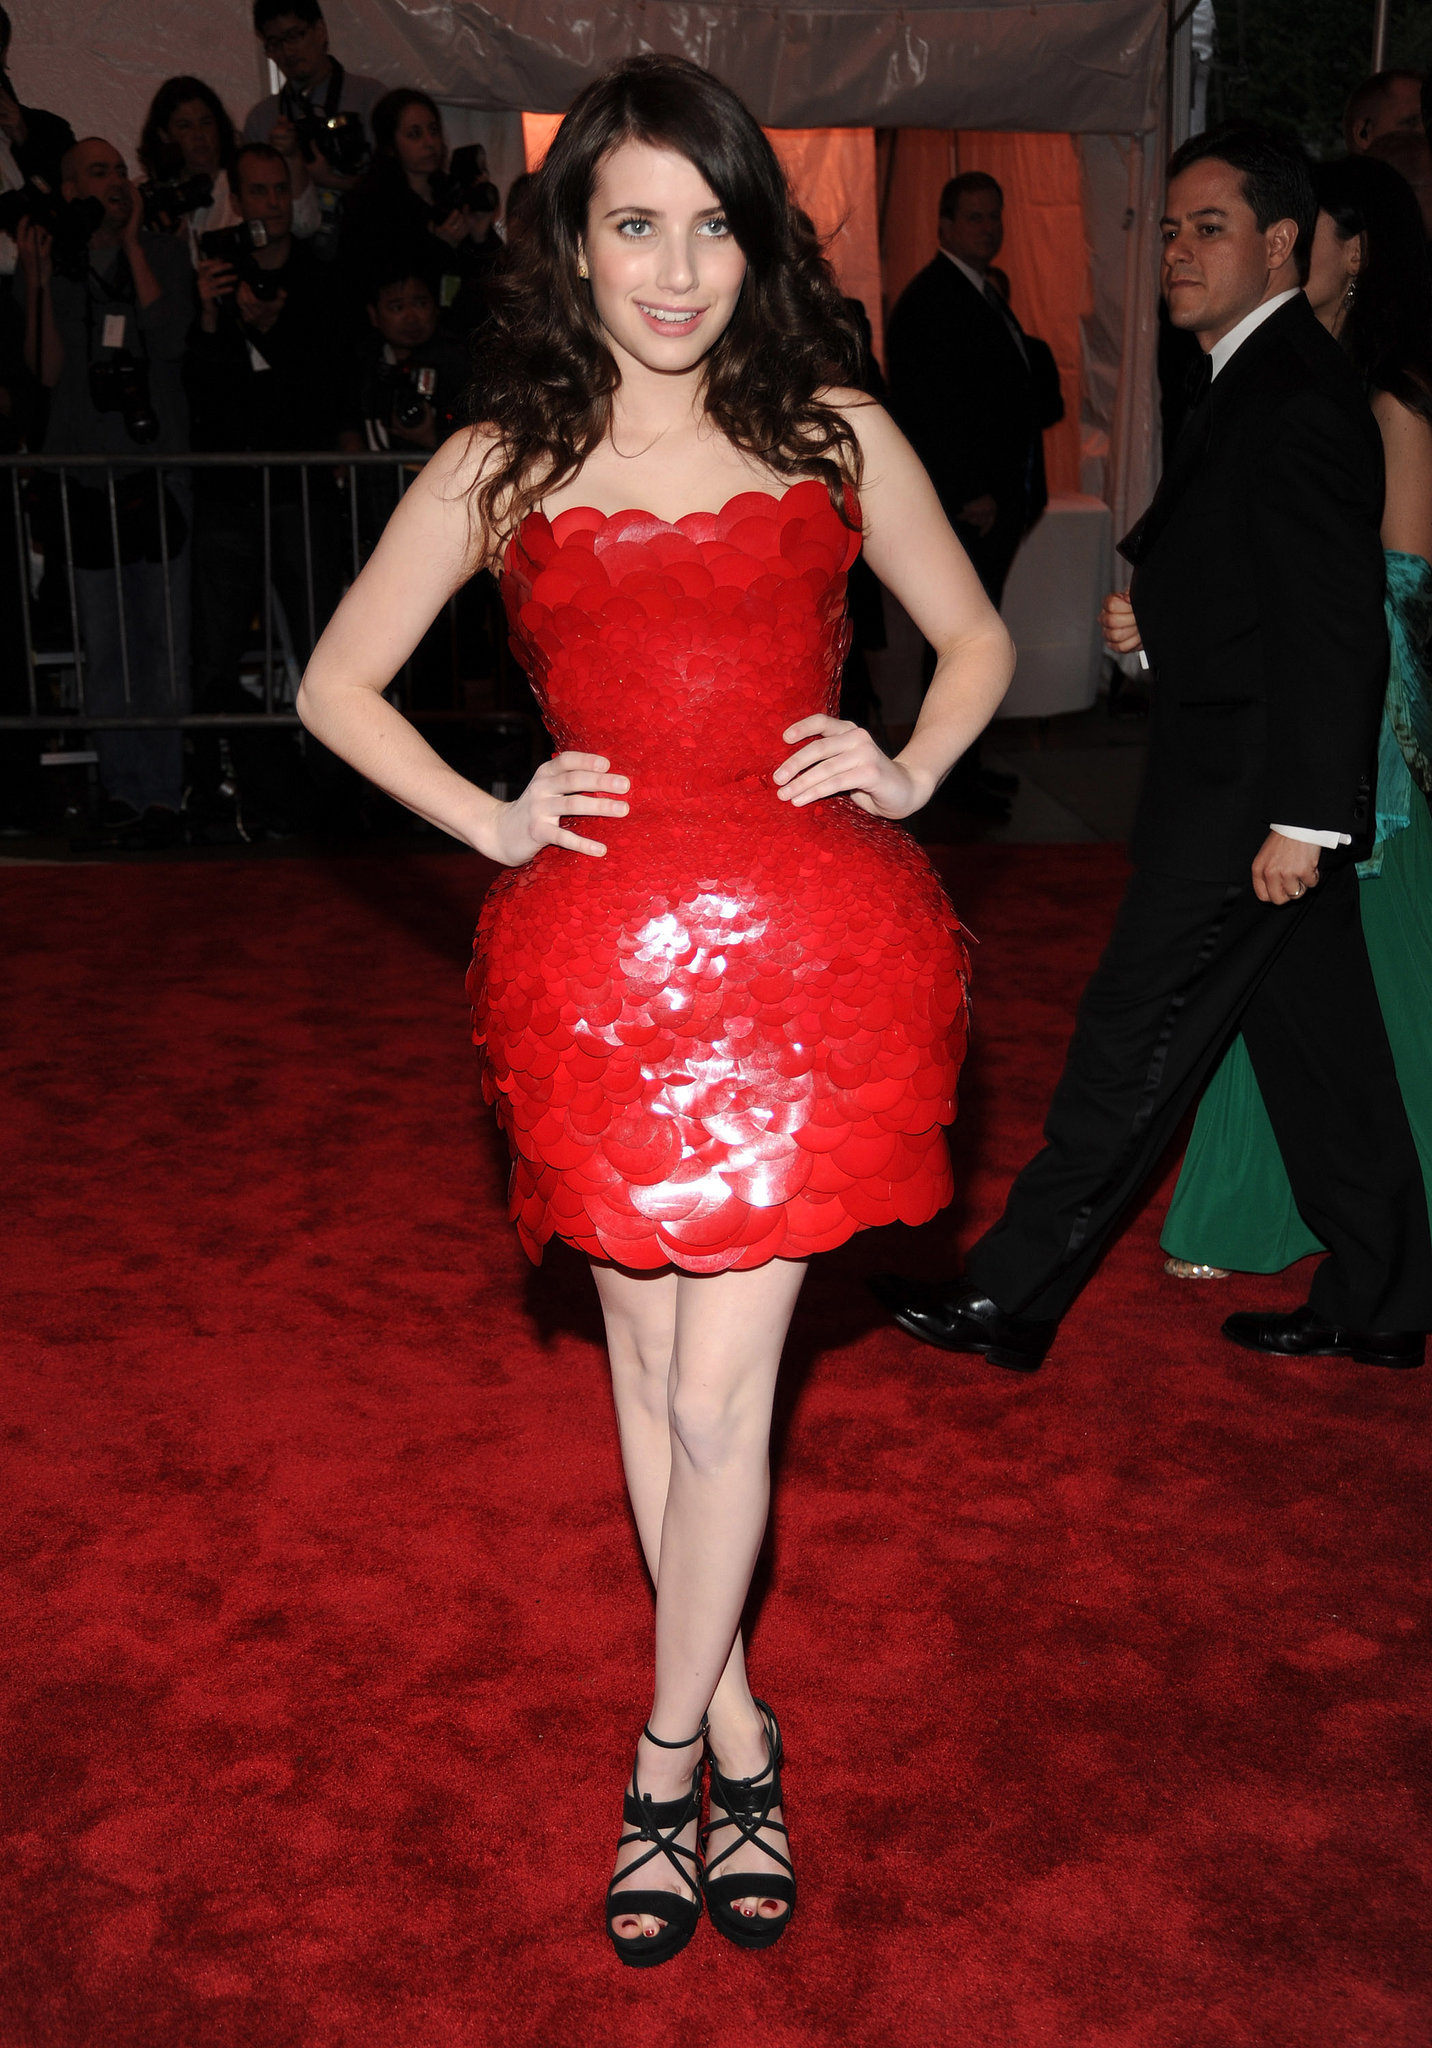 Emma opted for a statement-making red Atelier Versace strapless at the Met Gala in 2009.